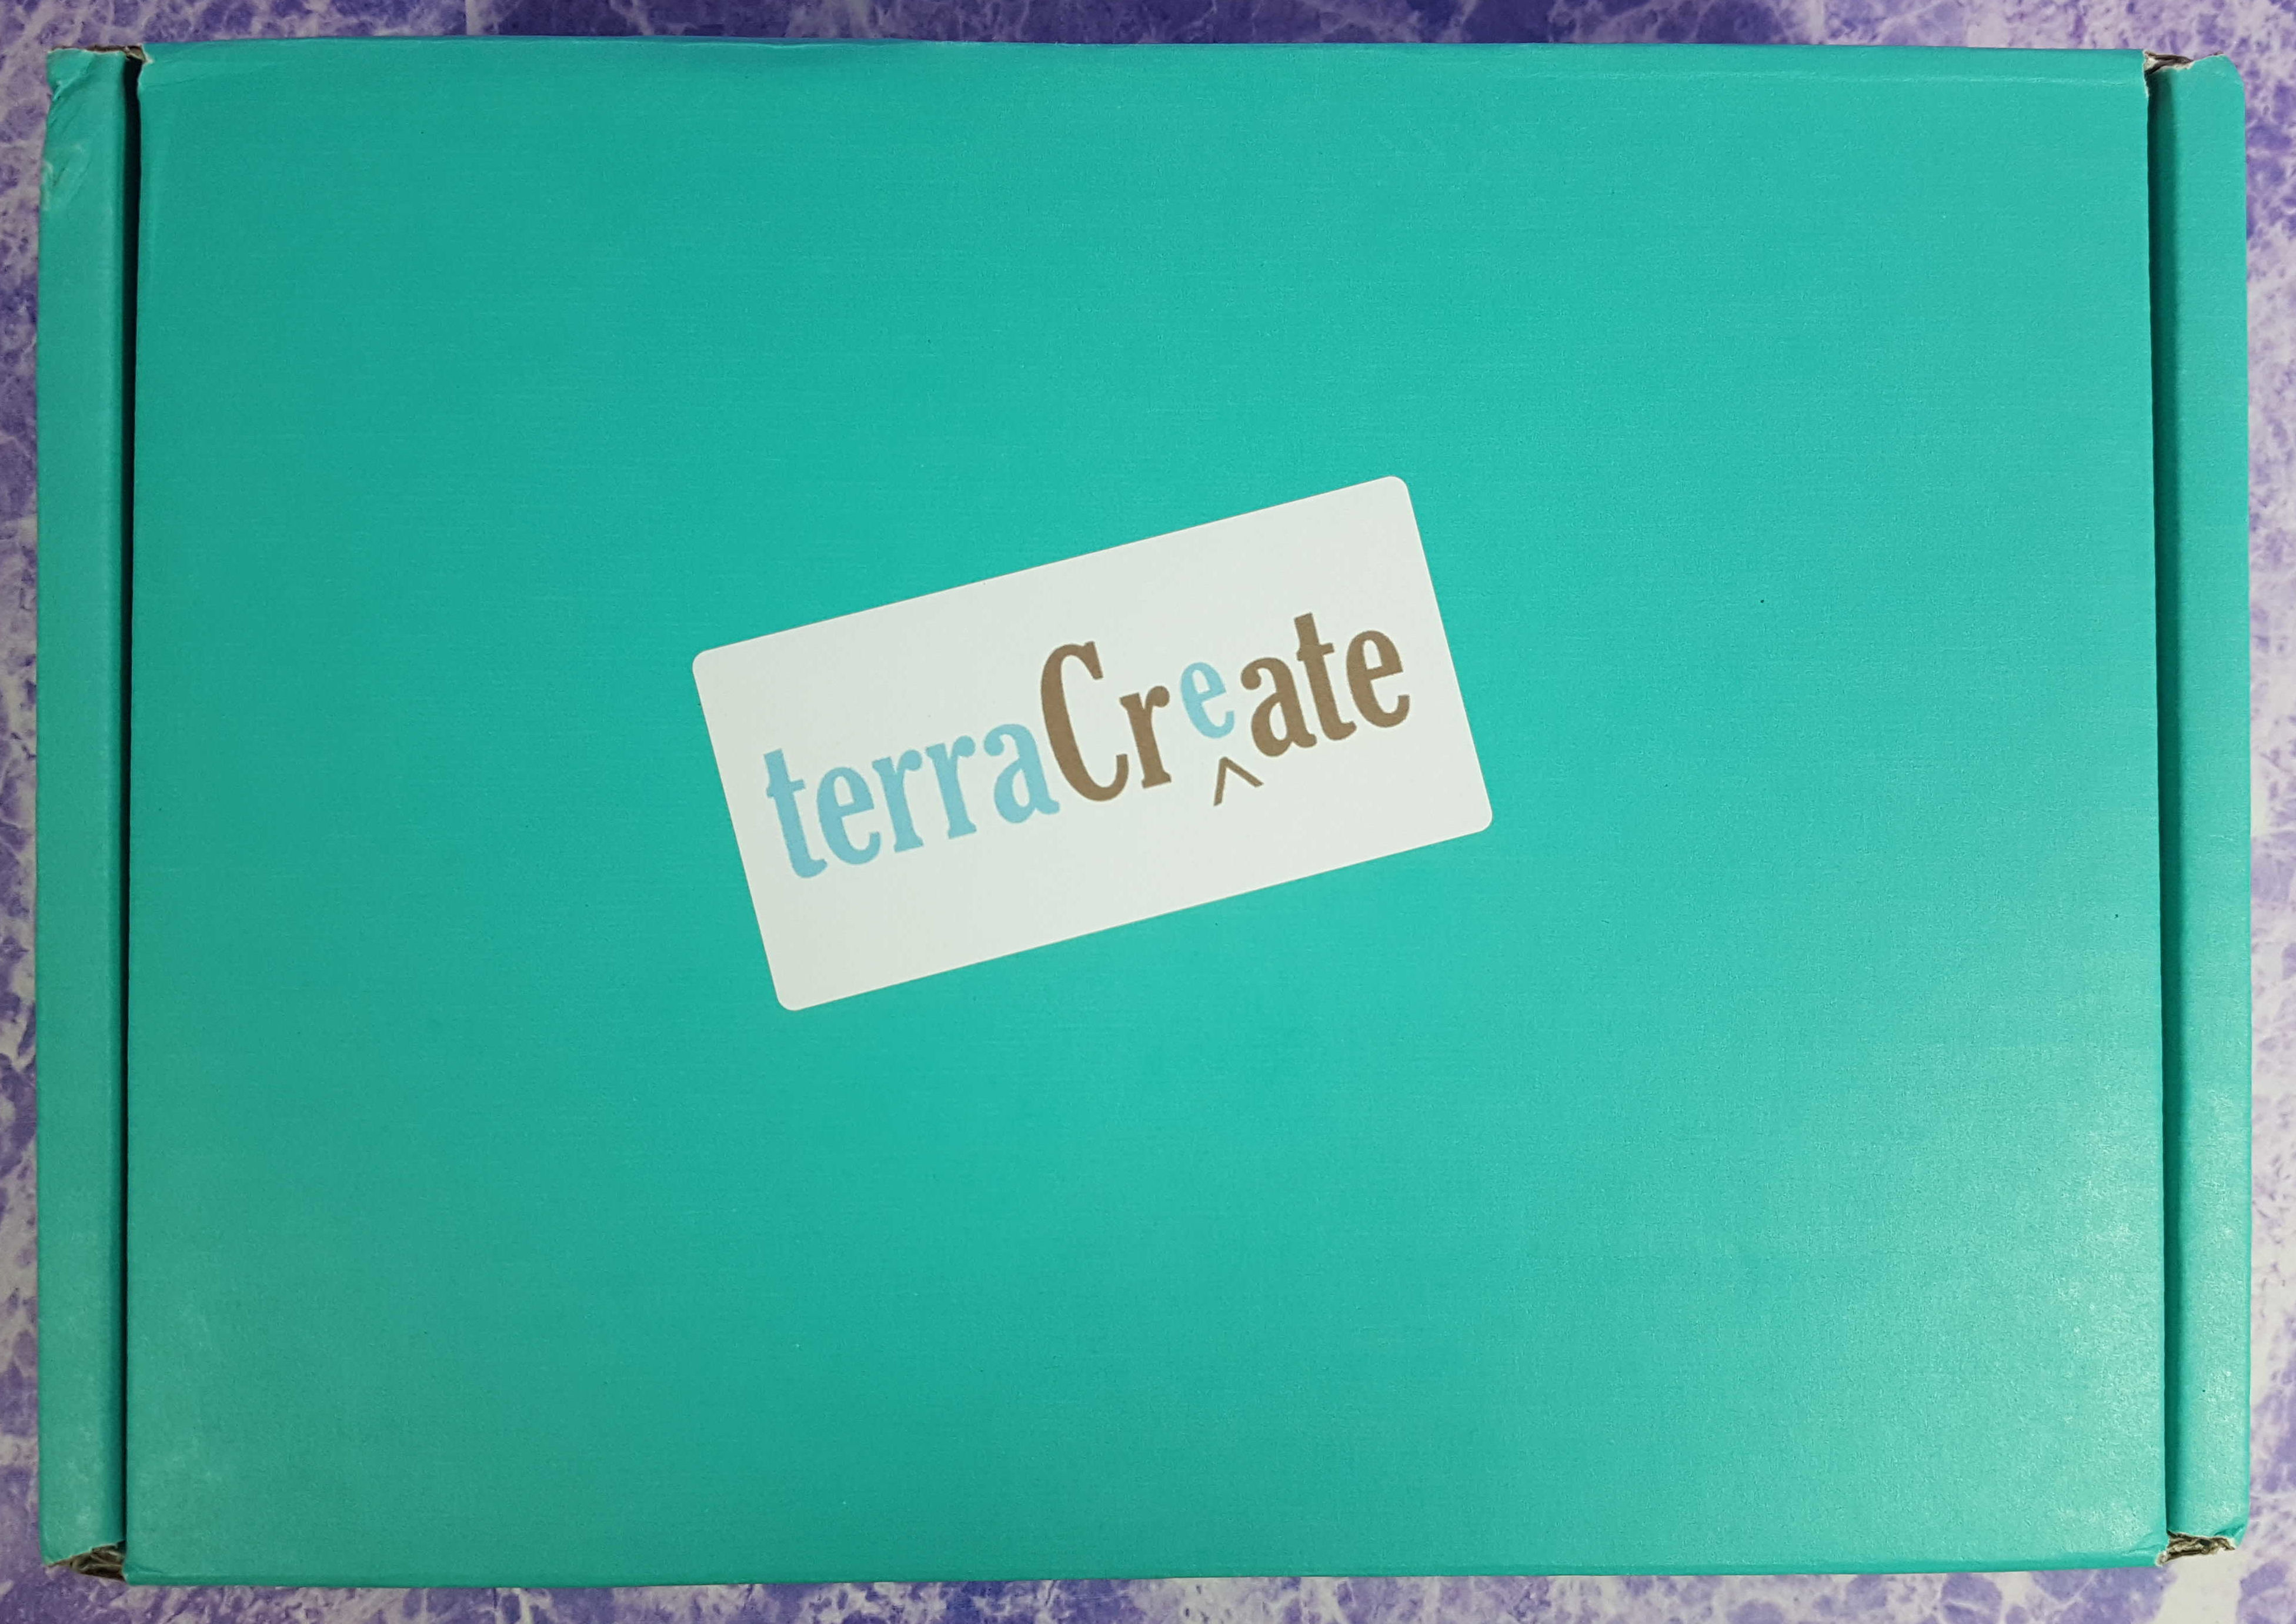 terracreate_november2016_box